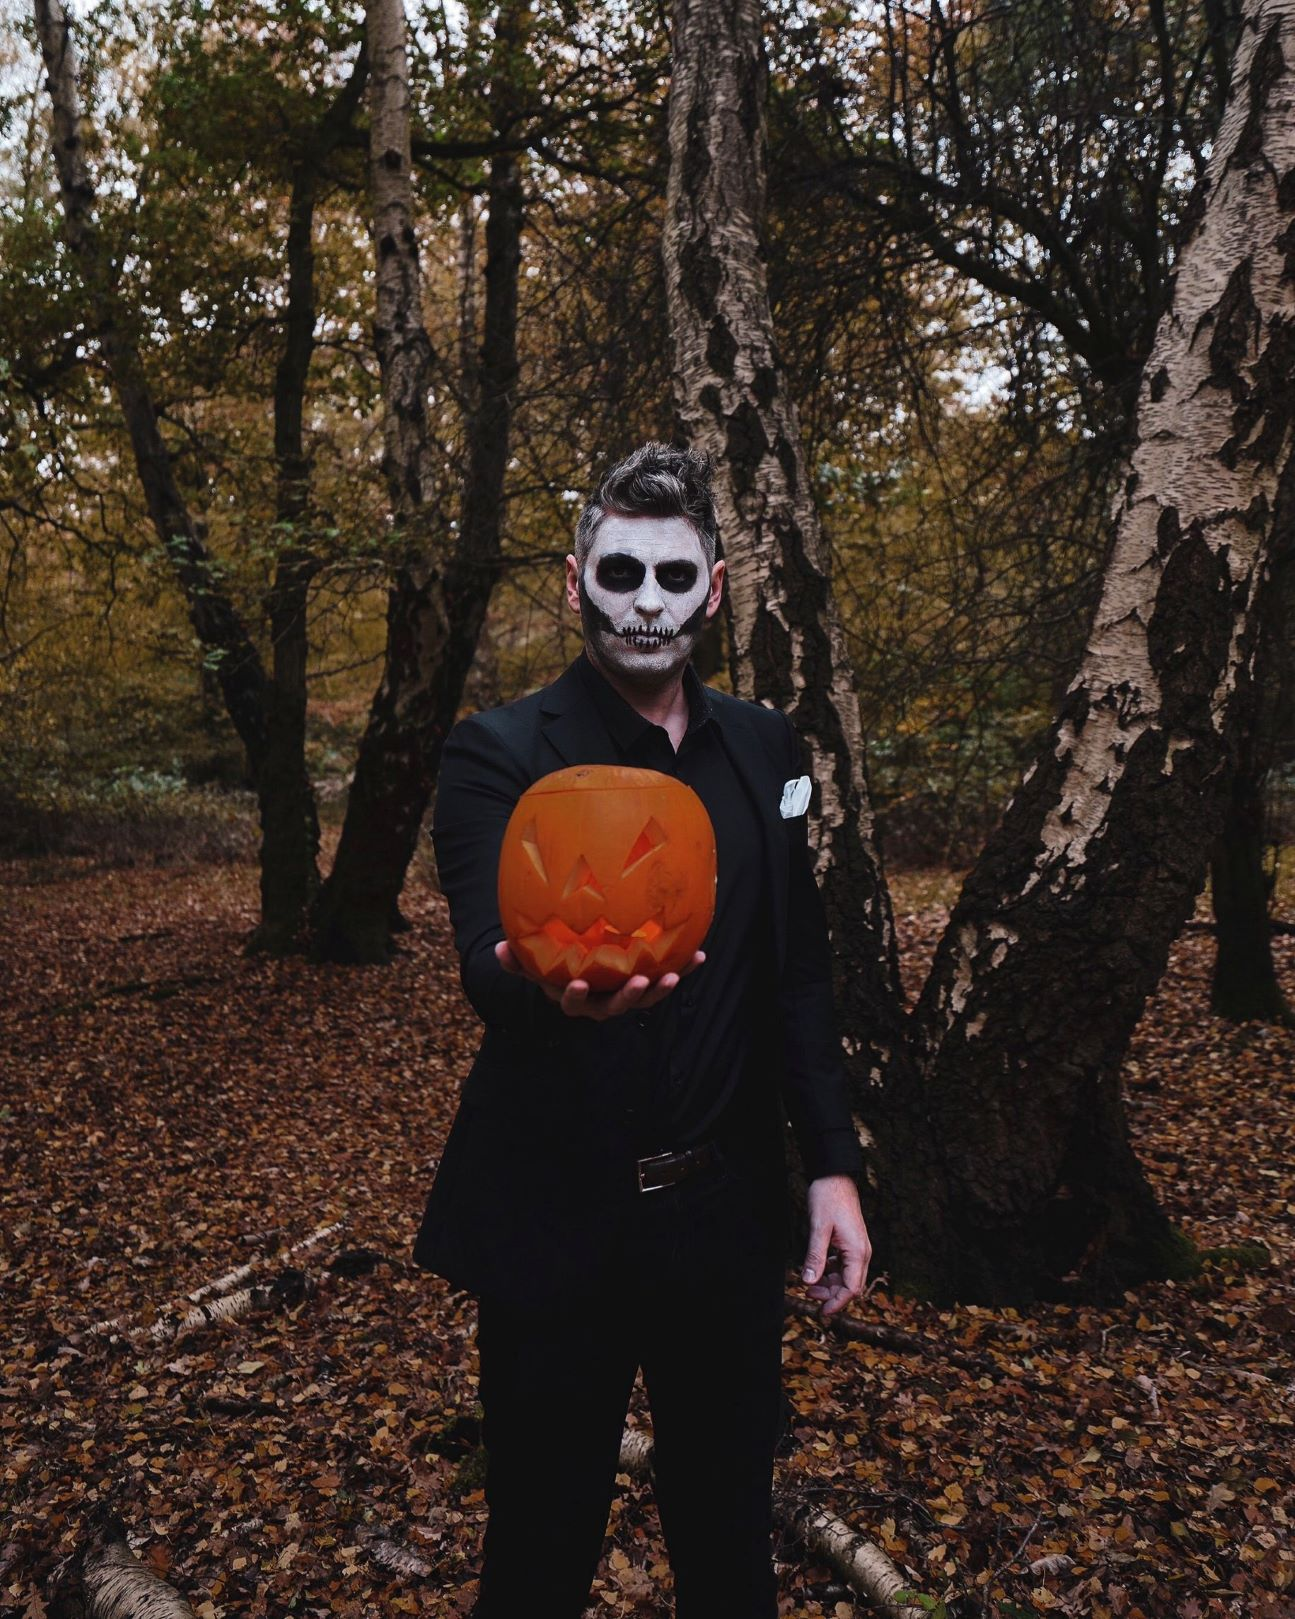 man in woods wearing all black suit with face painted like a skeleton and holding a carved pumpkin